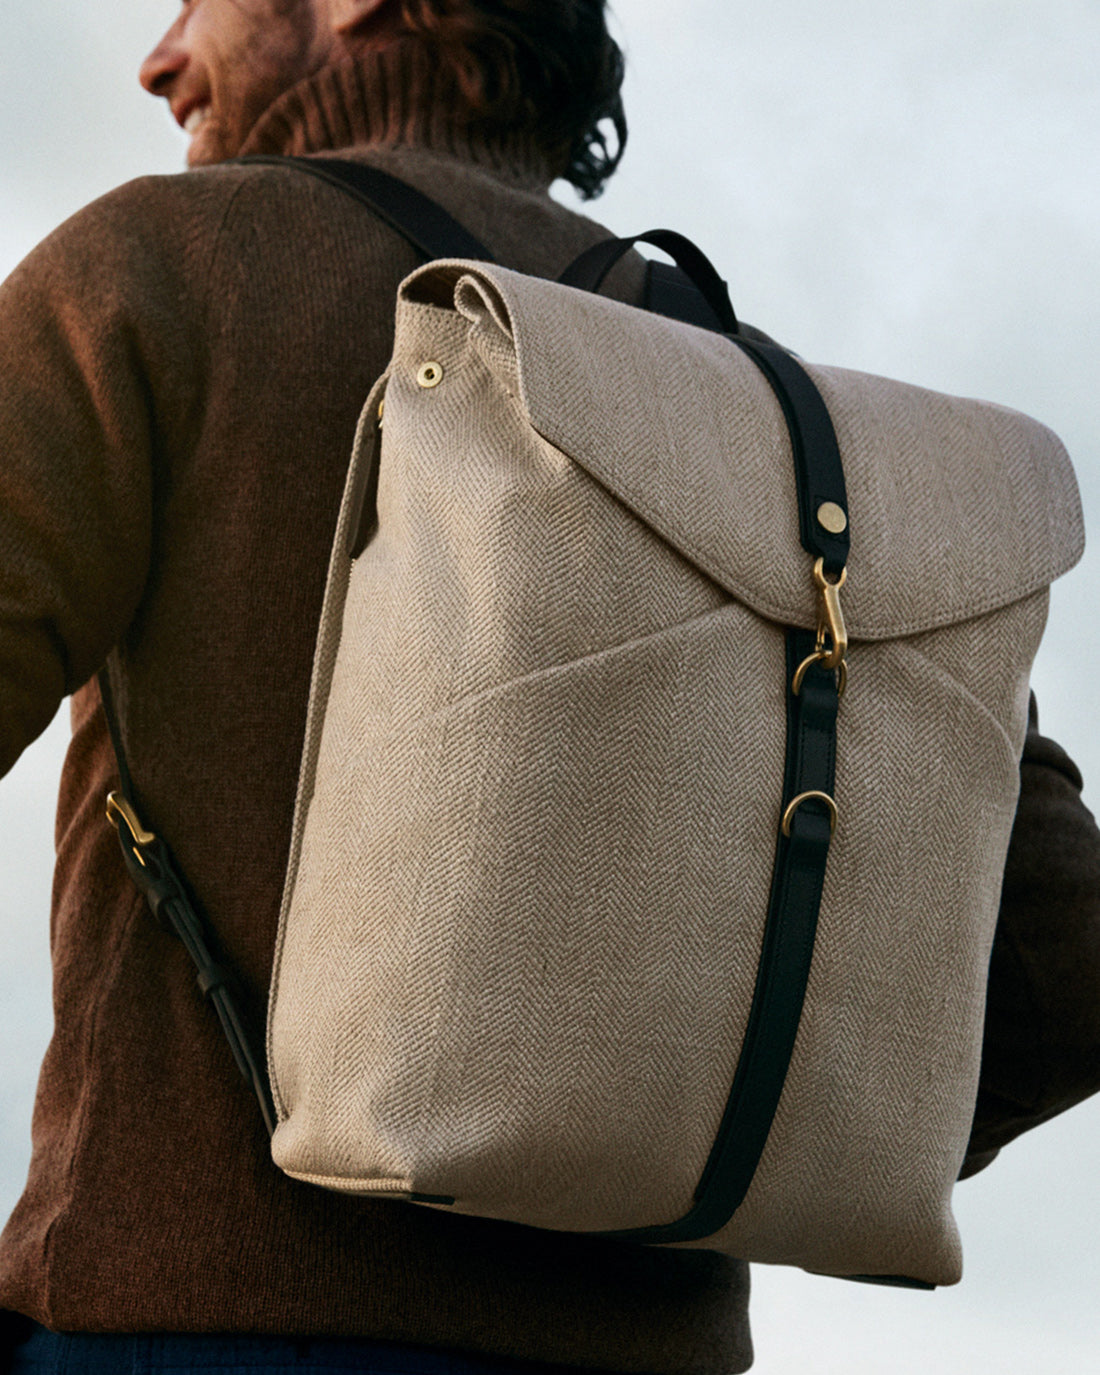 M/S Rucksack – Grand Herringbone/Black description image